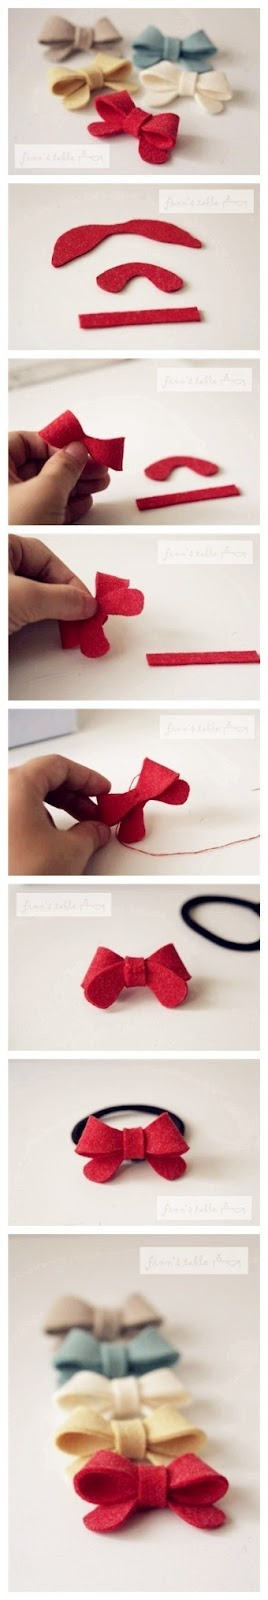 DIY | Felt: Bow Pony Holders    These bowties are cool....